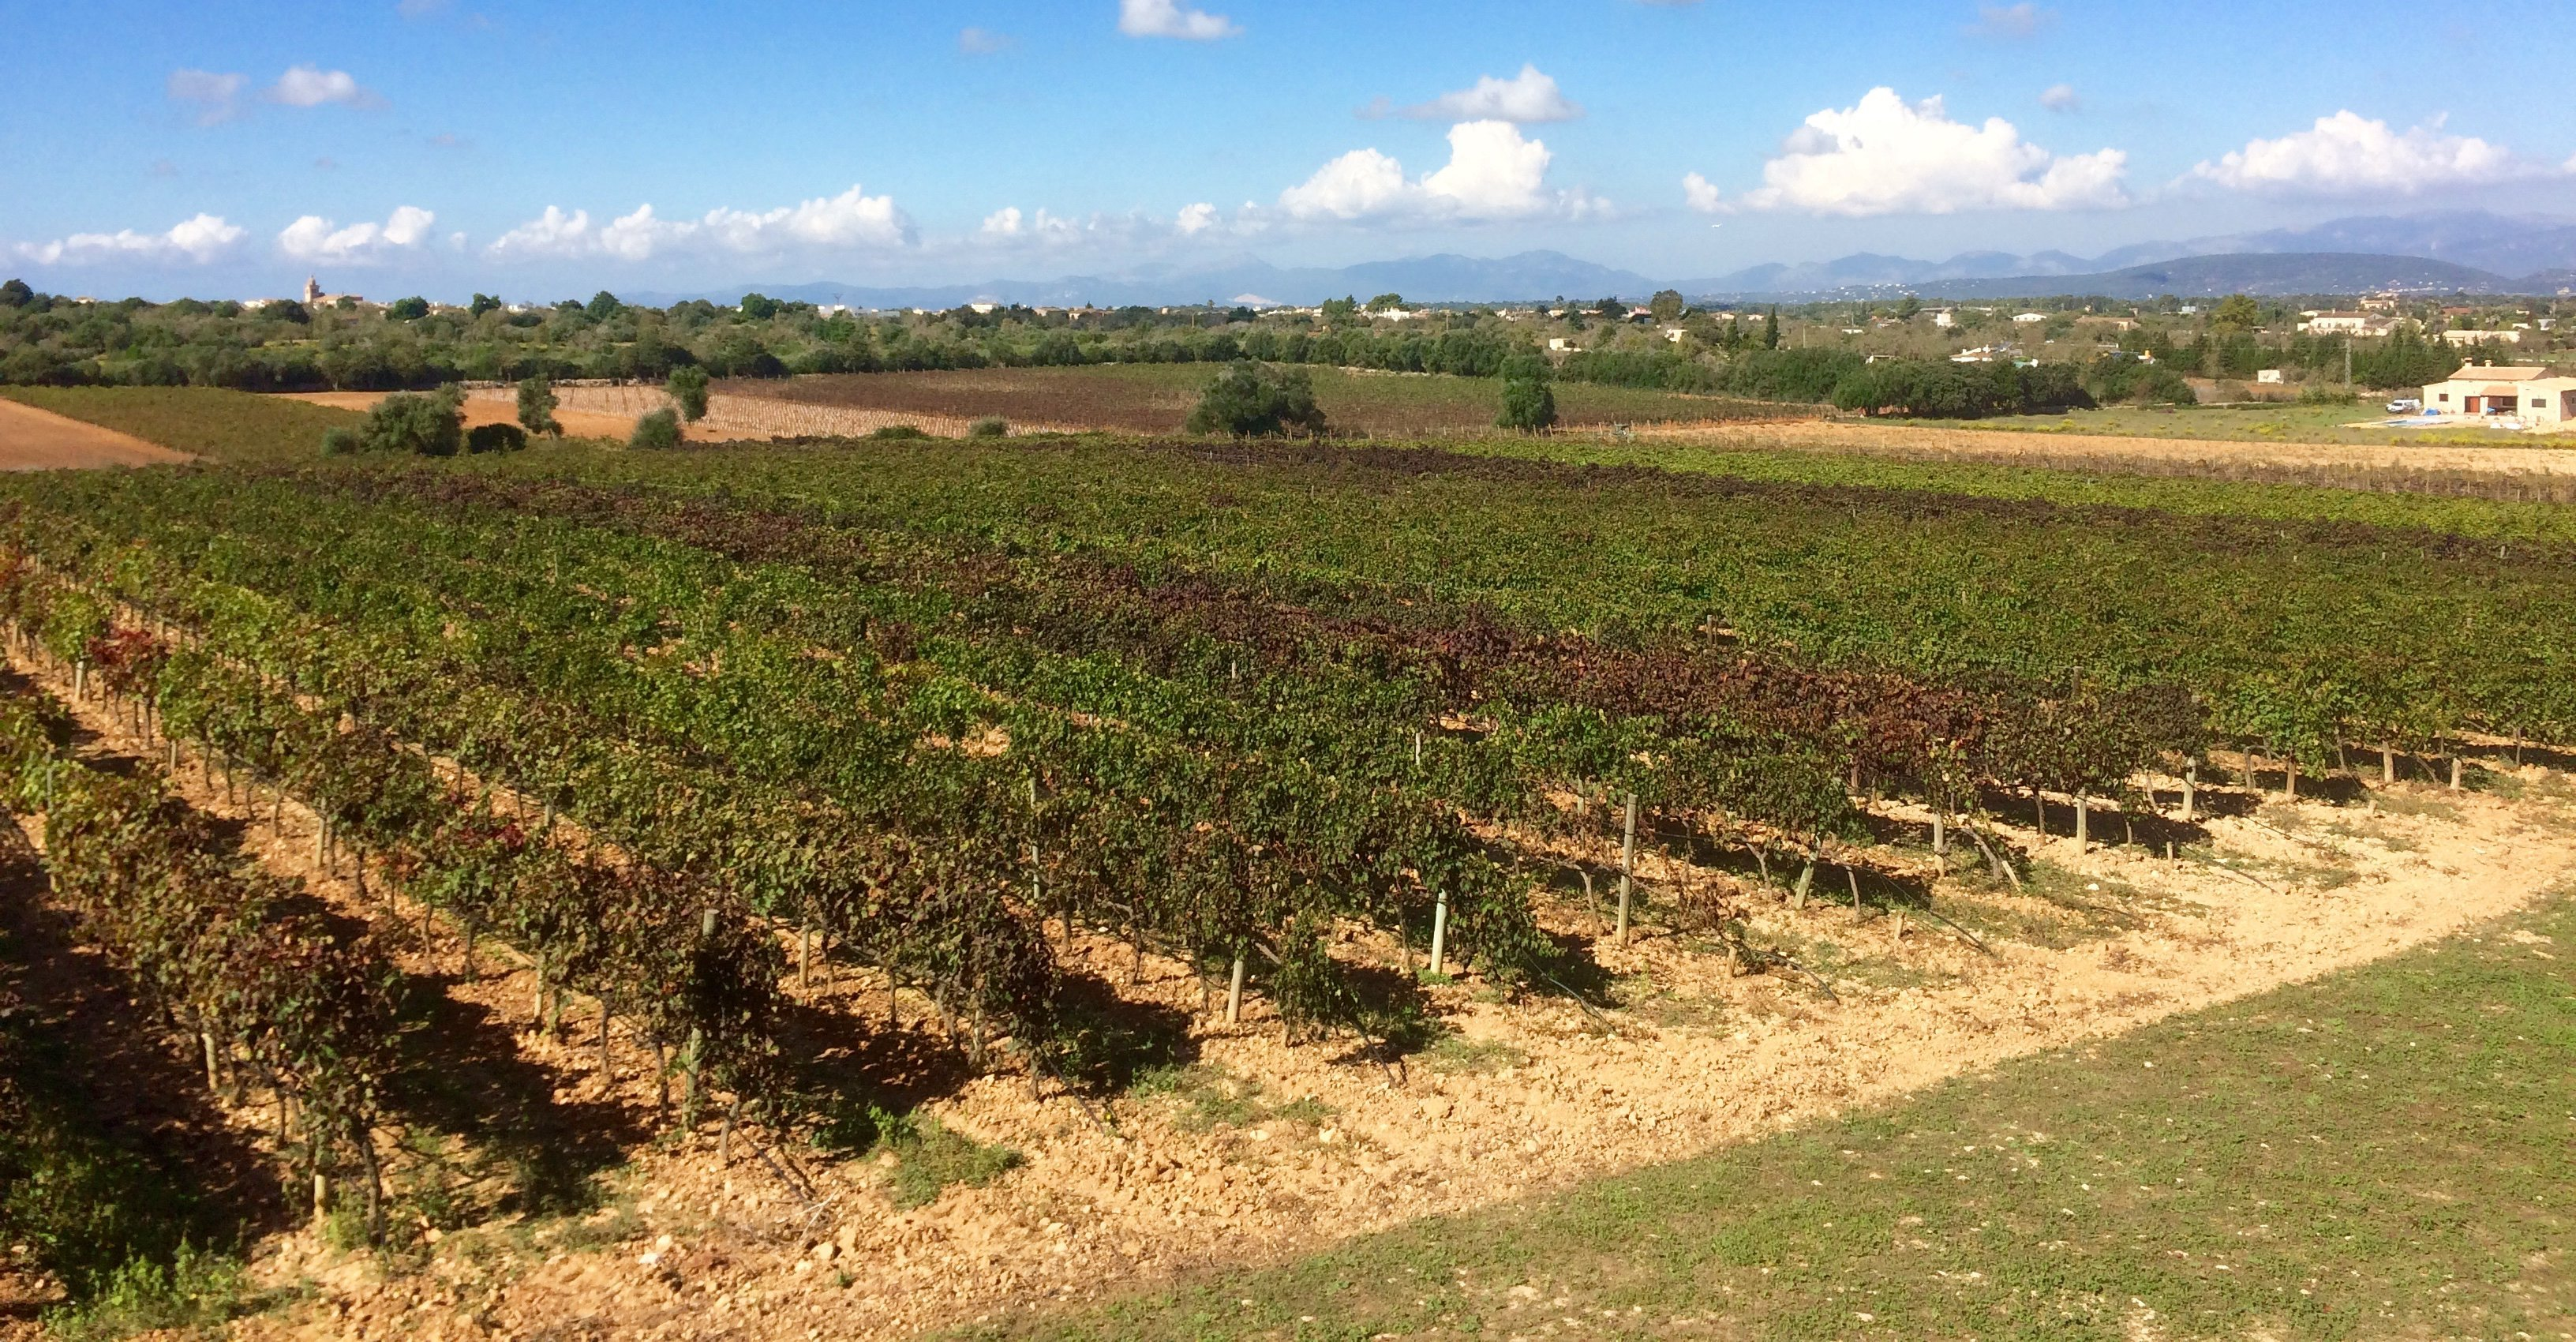 Mallorca Wine - Bodega Oliver Moragues - View across the vineyard